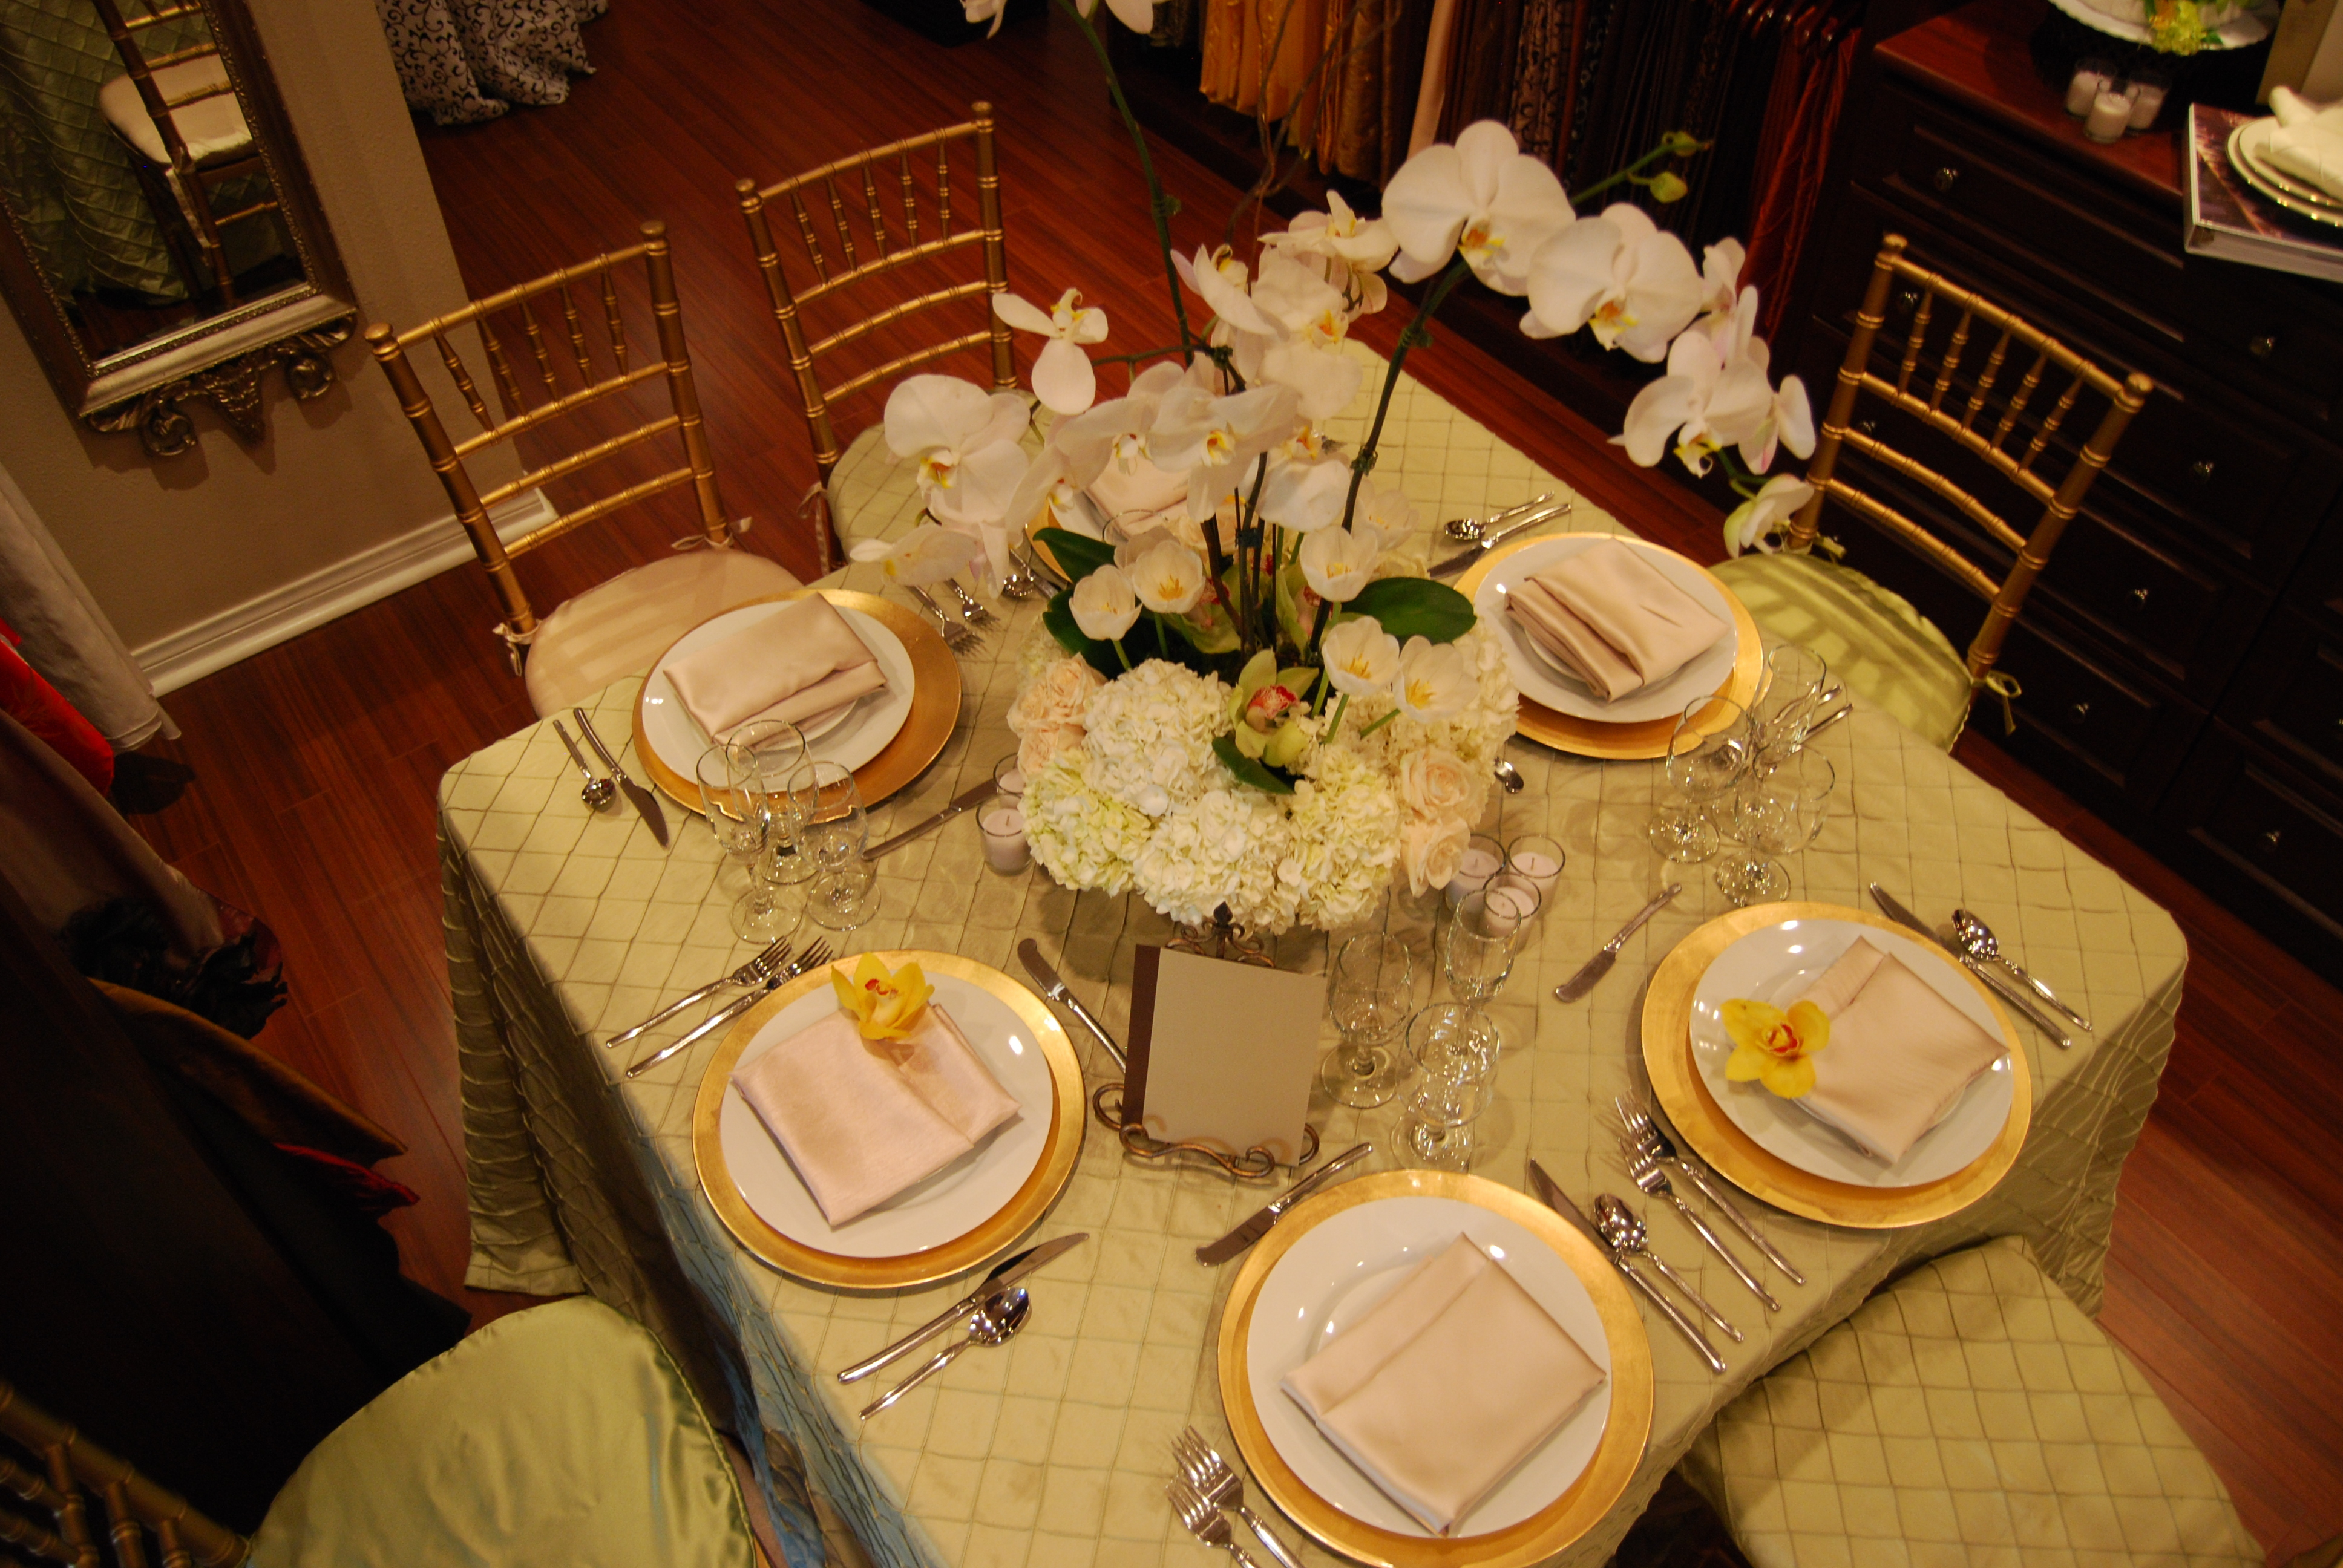 Reception, Flowers & Decor, white, pink, green, brown, gold, Centerpieces, Flowers, Roses, Centerpiece, Orchids, Elegant, Hydrangea, Tablecloth, An, Touch, An elegant touch